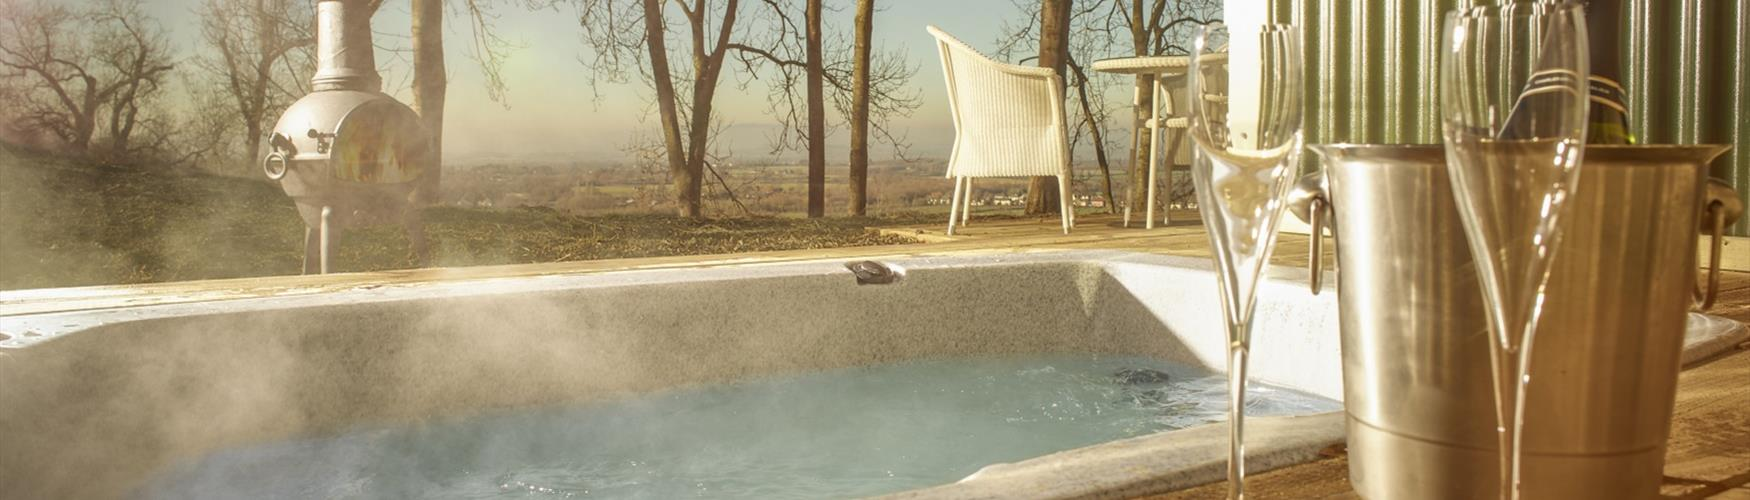 Hot tub with a view - Hilly Huts at the Fish Hotel